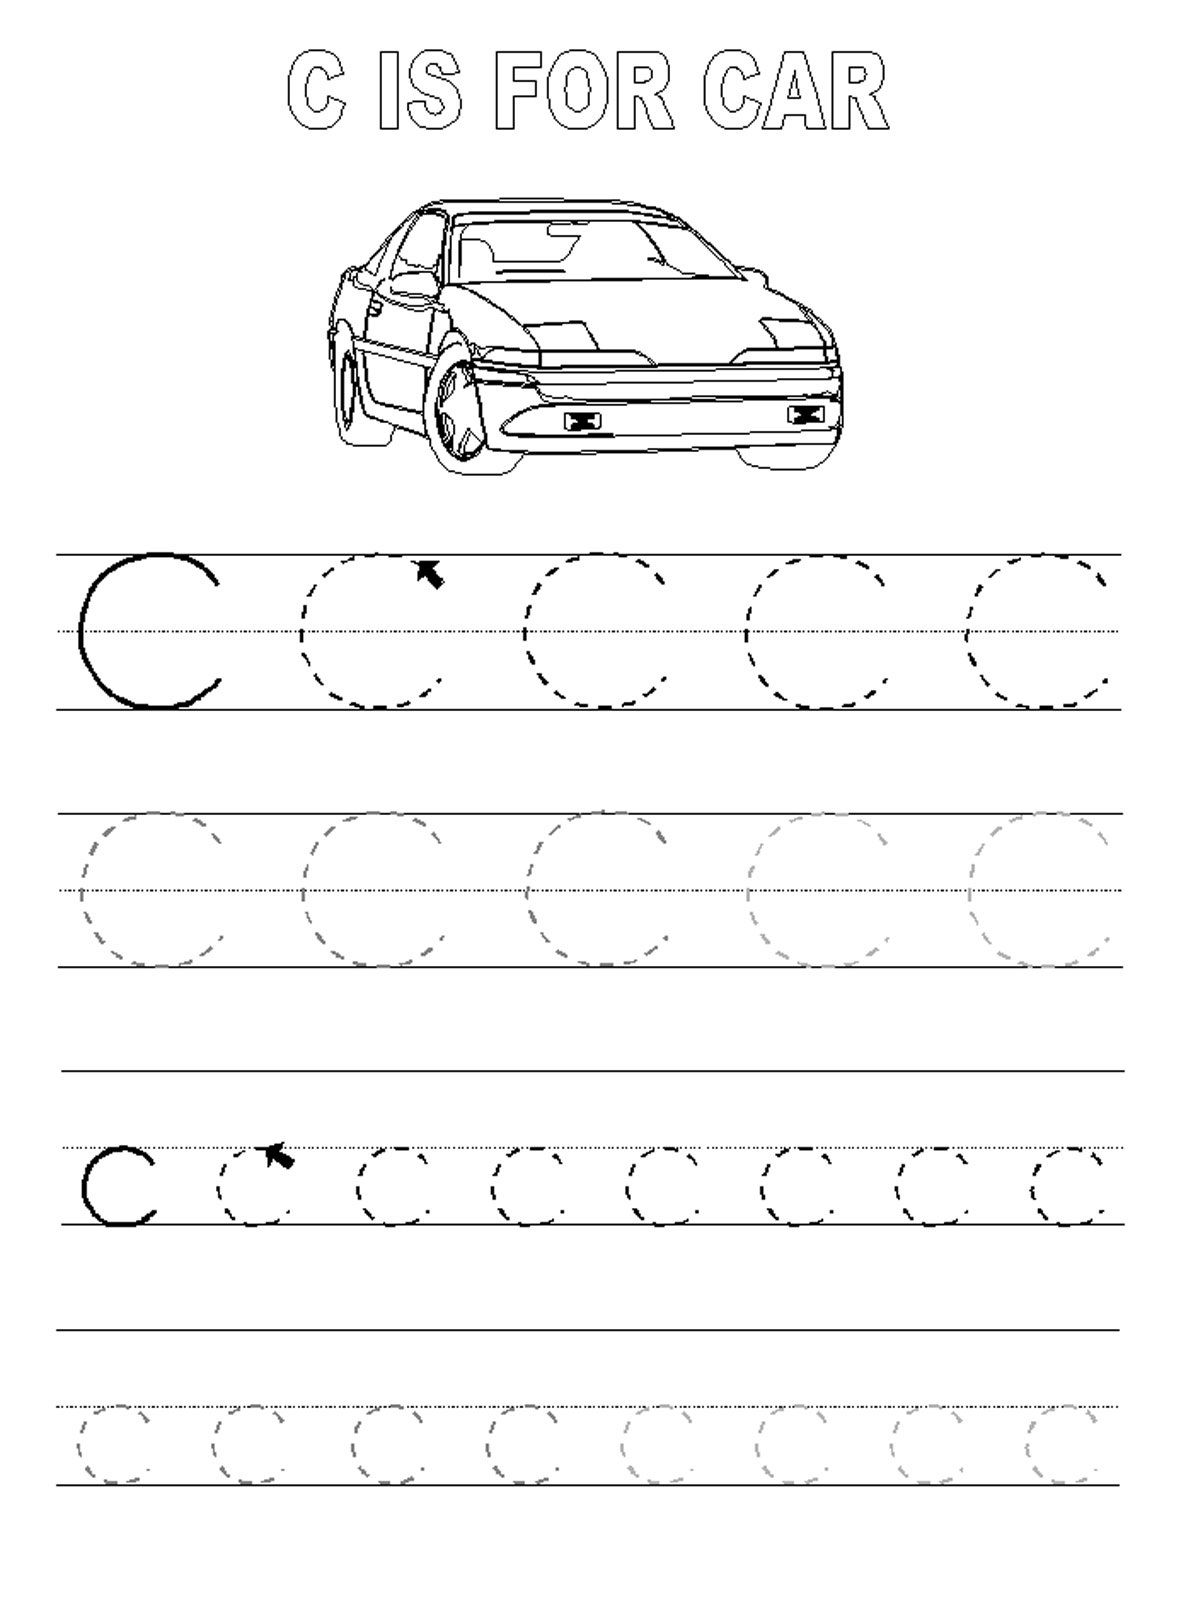 Worksheets Letter C Worksheets Preschool trace the letter c worksheets activity shelter kids shelter